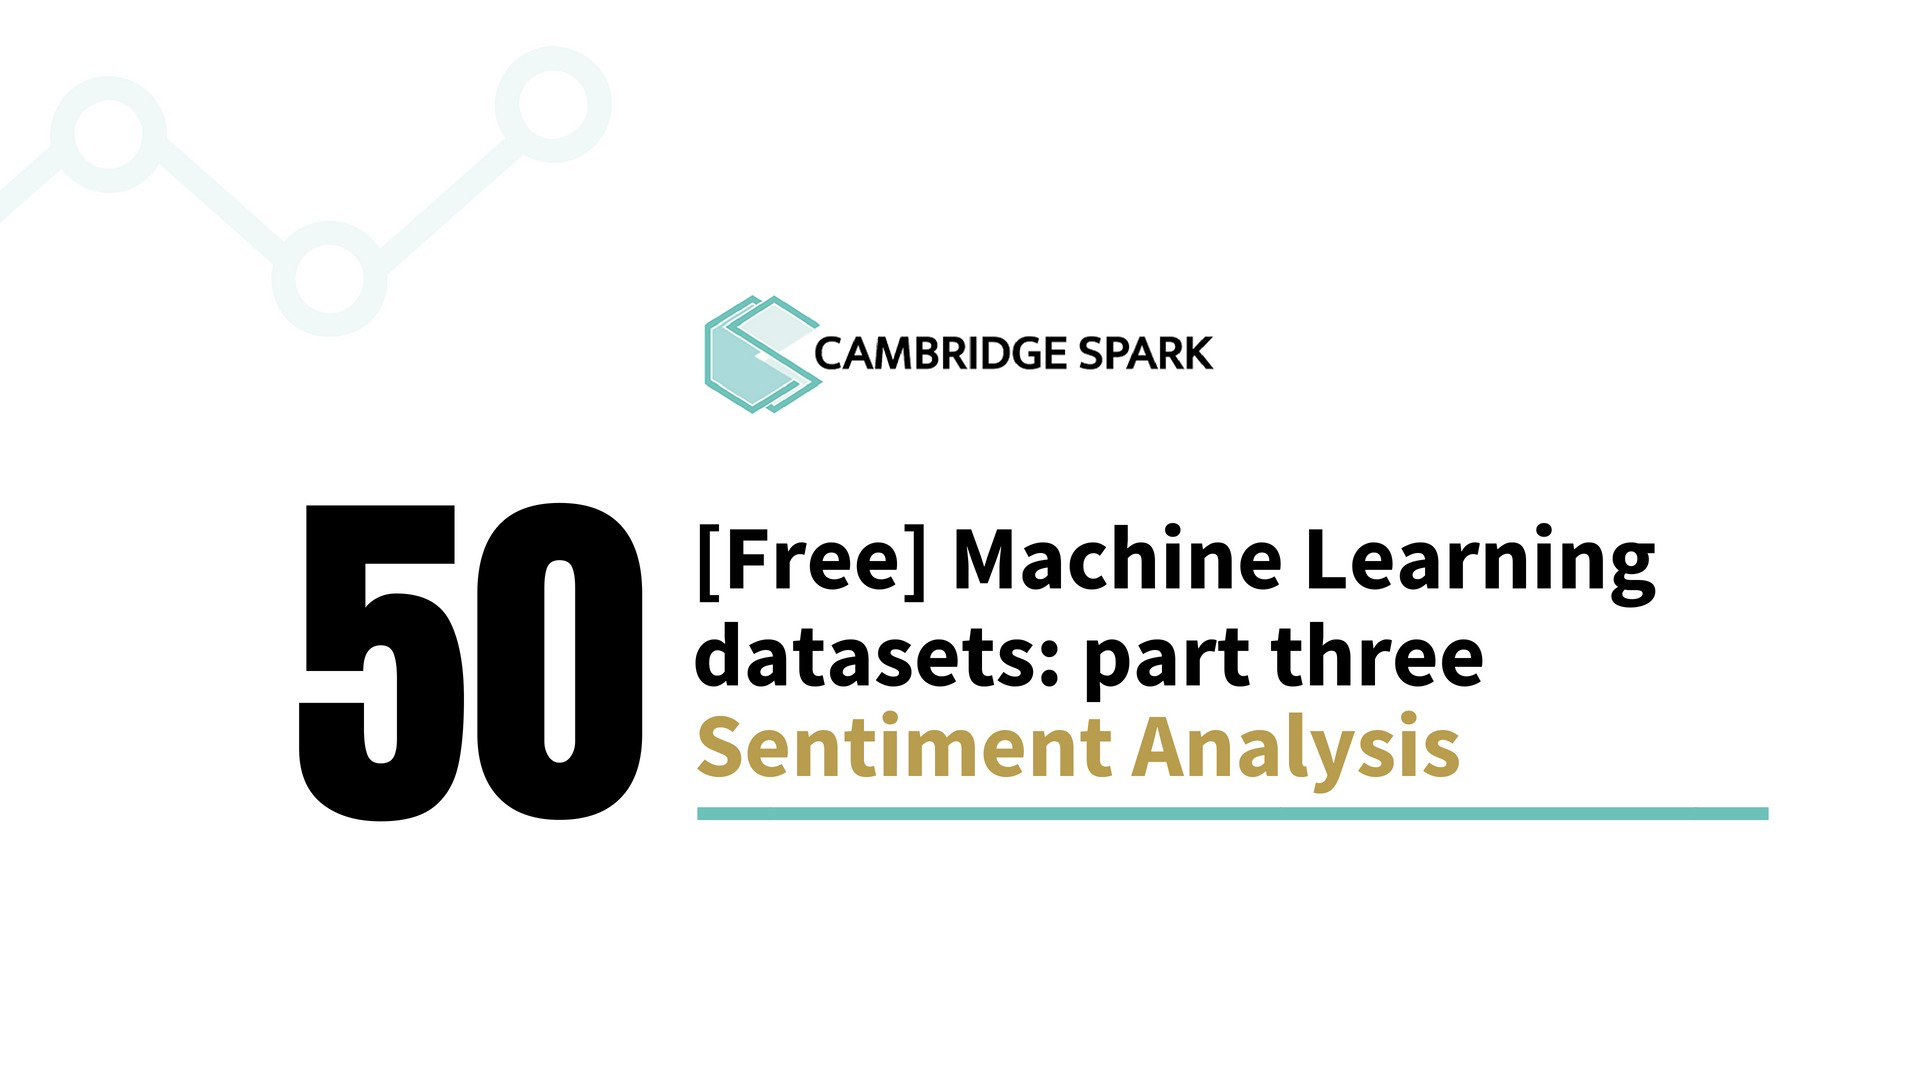 50 Free Machine Learning Datasets Sentiment Analysis